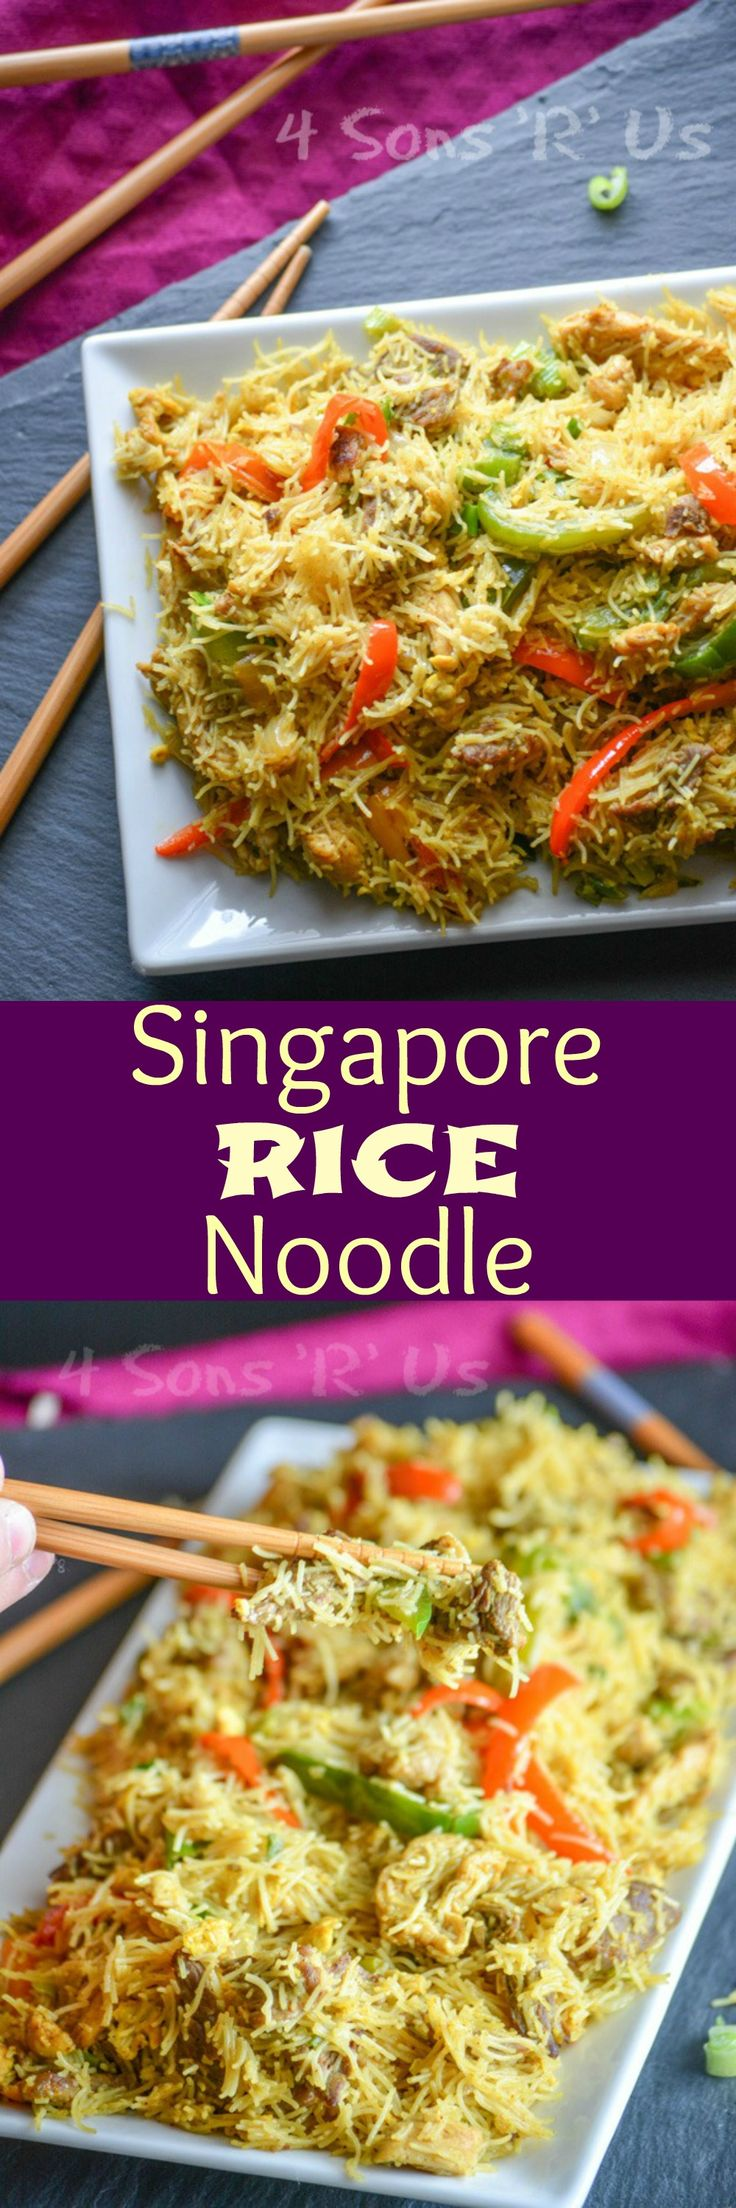 Make your favorite Asian dish at home. This easy Singapore Rice Noodle is a flavorful toss up of curried vermicelli rice noodles, fresh sauteed veggies, and seared strips of your favorite meat and other Asian flavors. I swear, some things in life are just inevitable. Not like mortality inevitable. But[Read more]